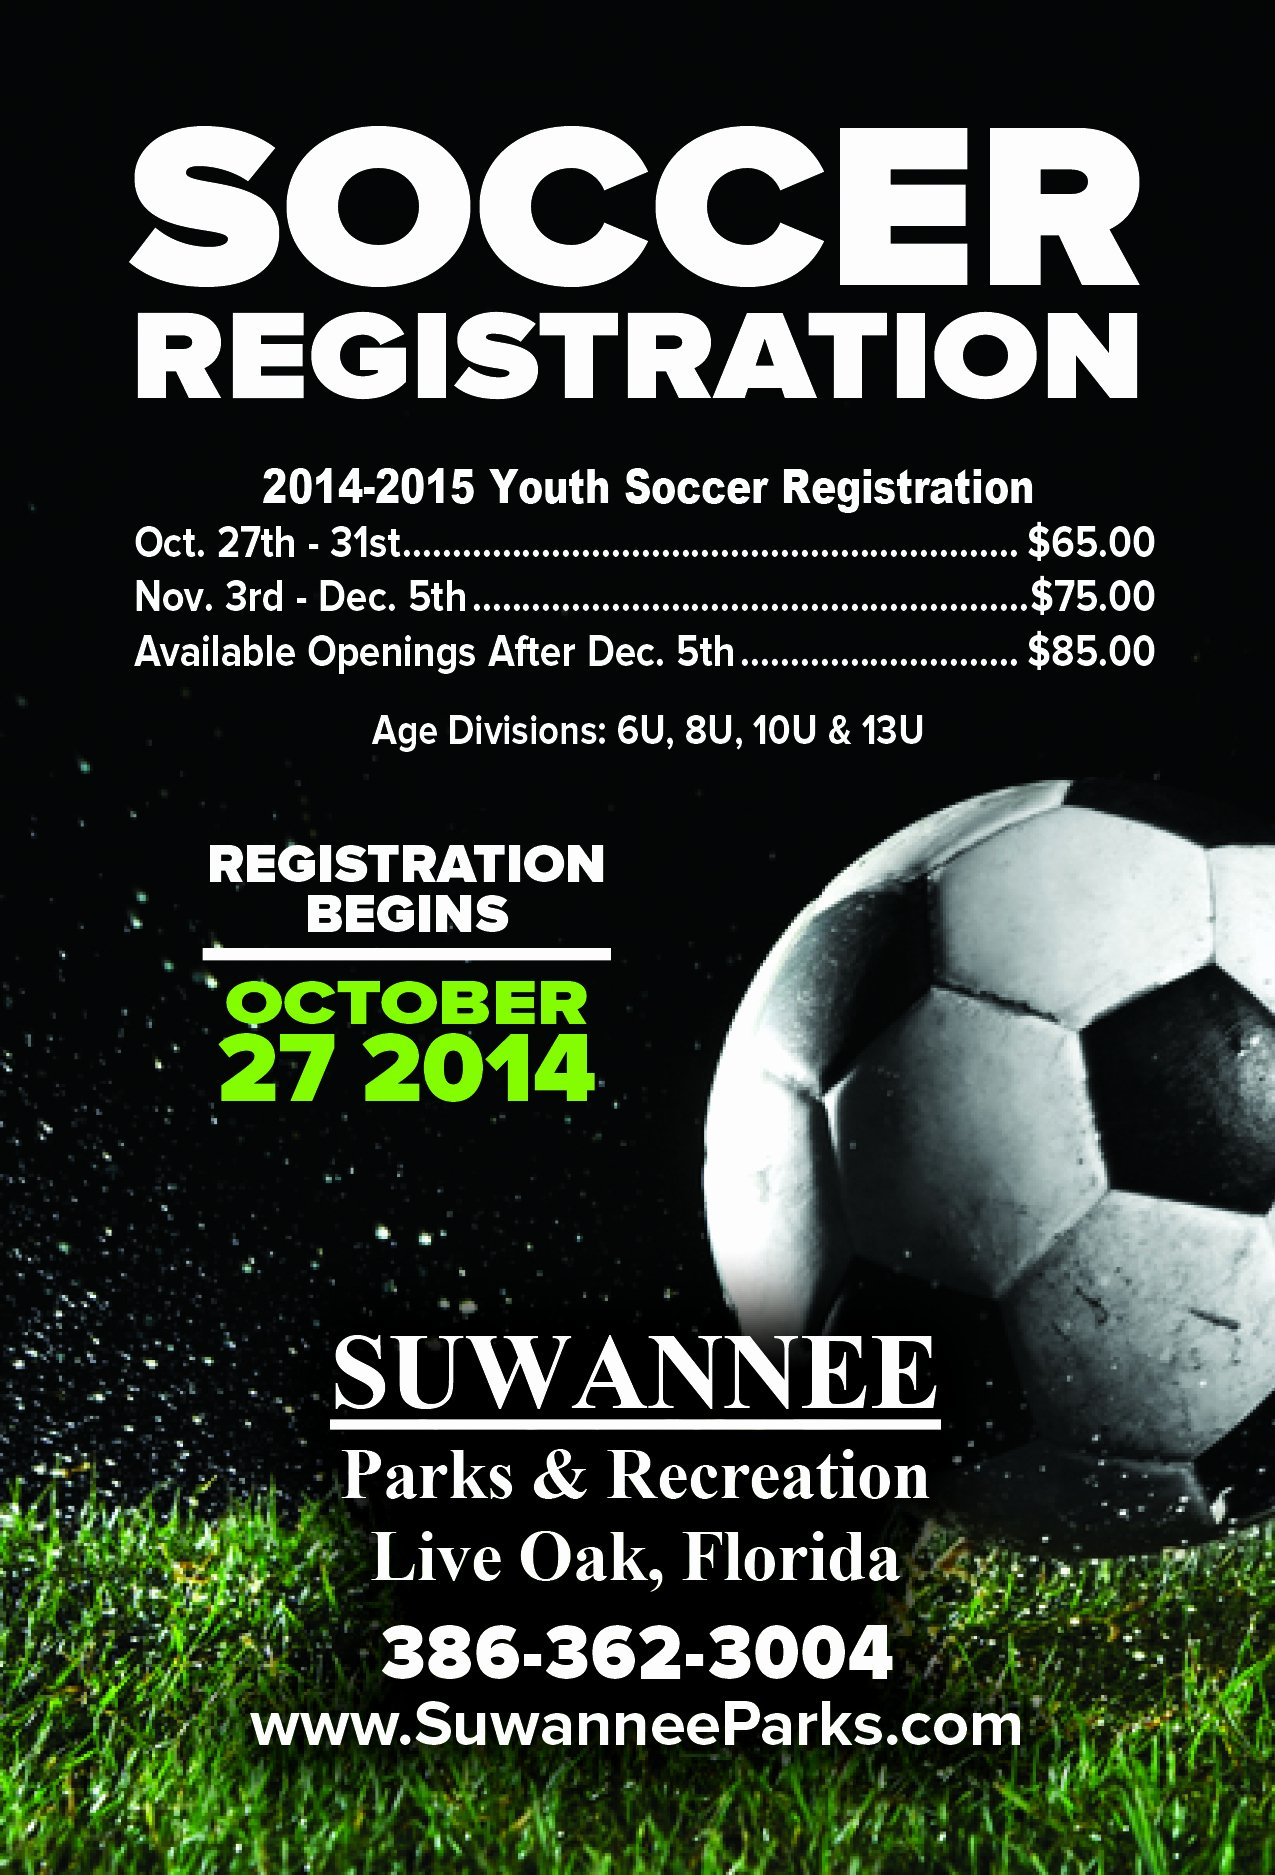 Soccer Flyer Template Free Beautiful Suwannee Parks and Recreation